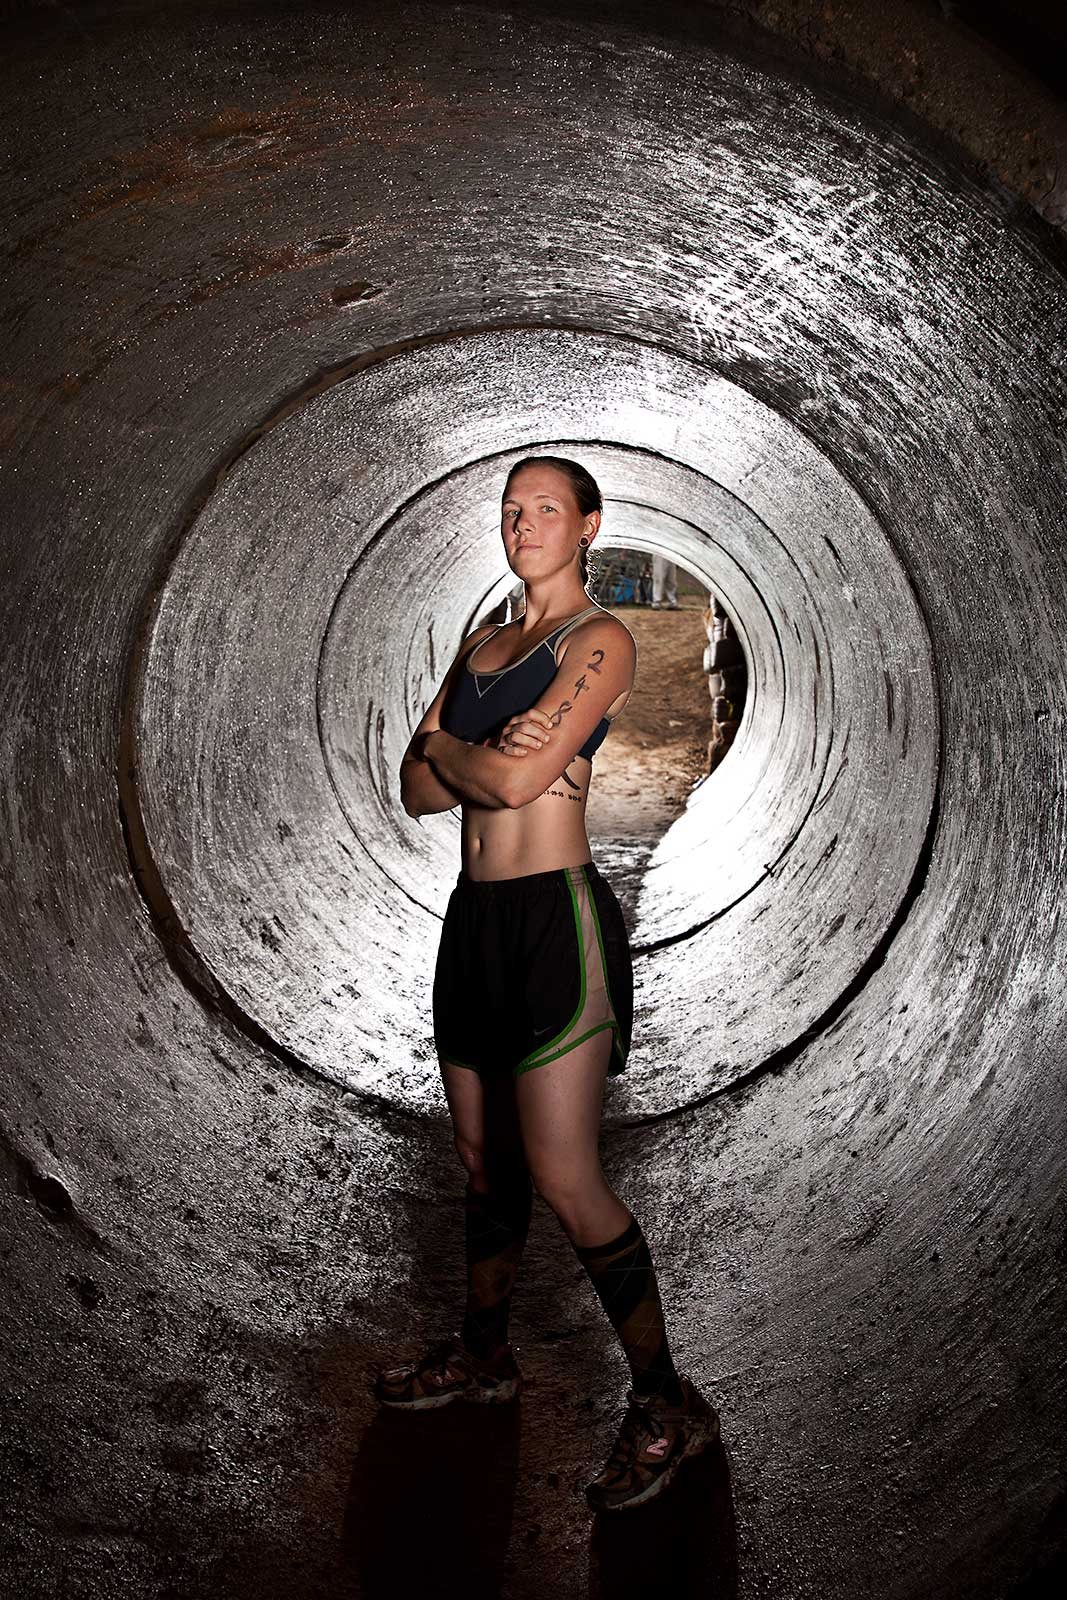 A fit athletic young woman poses in a tube during an adventure race in Connecticut